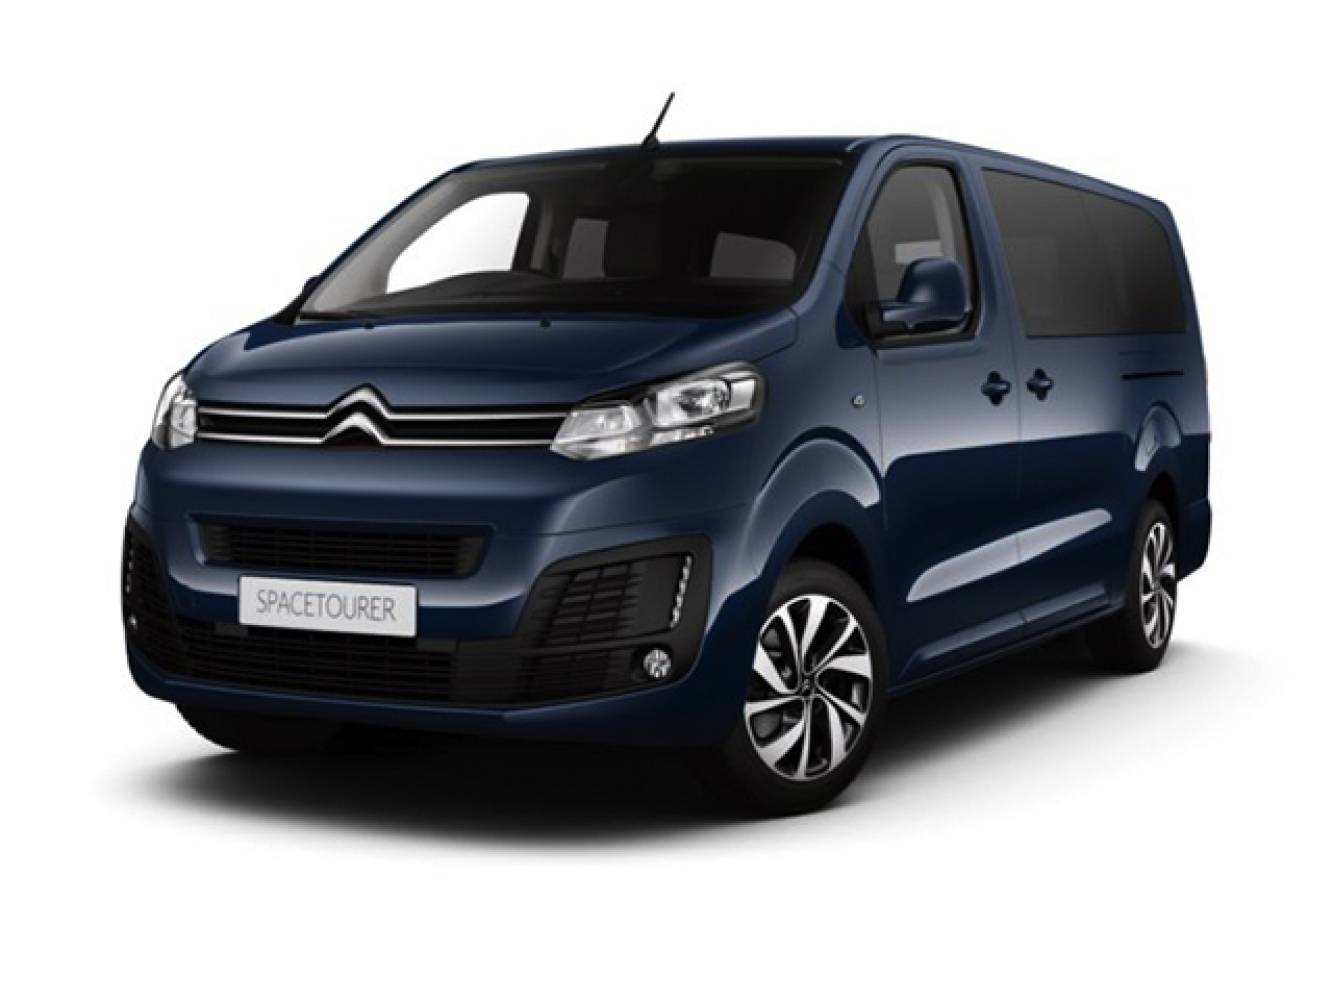 new citroen space tourer 1 5 bluehdi 120 feel xl 8 seat 5dr diesel estate for sale bristol. Black Bedroom Furniture Sets. Home Design Ideas